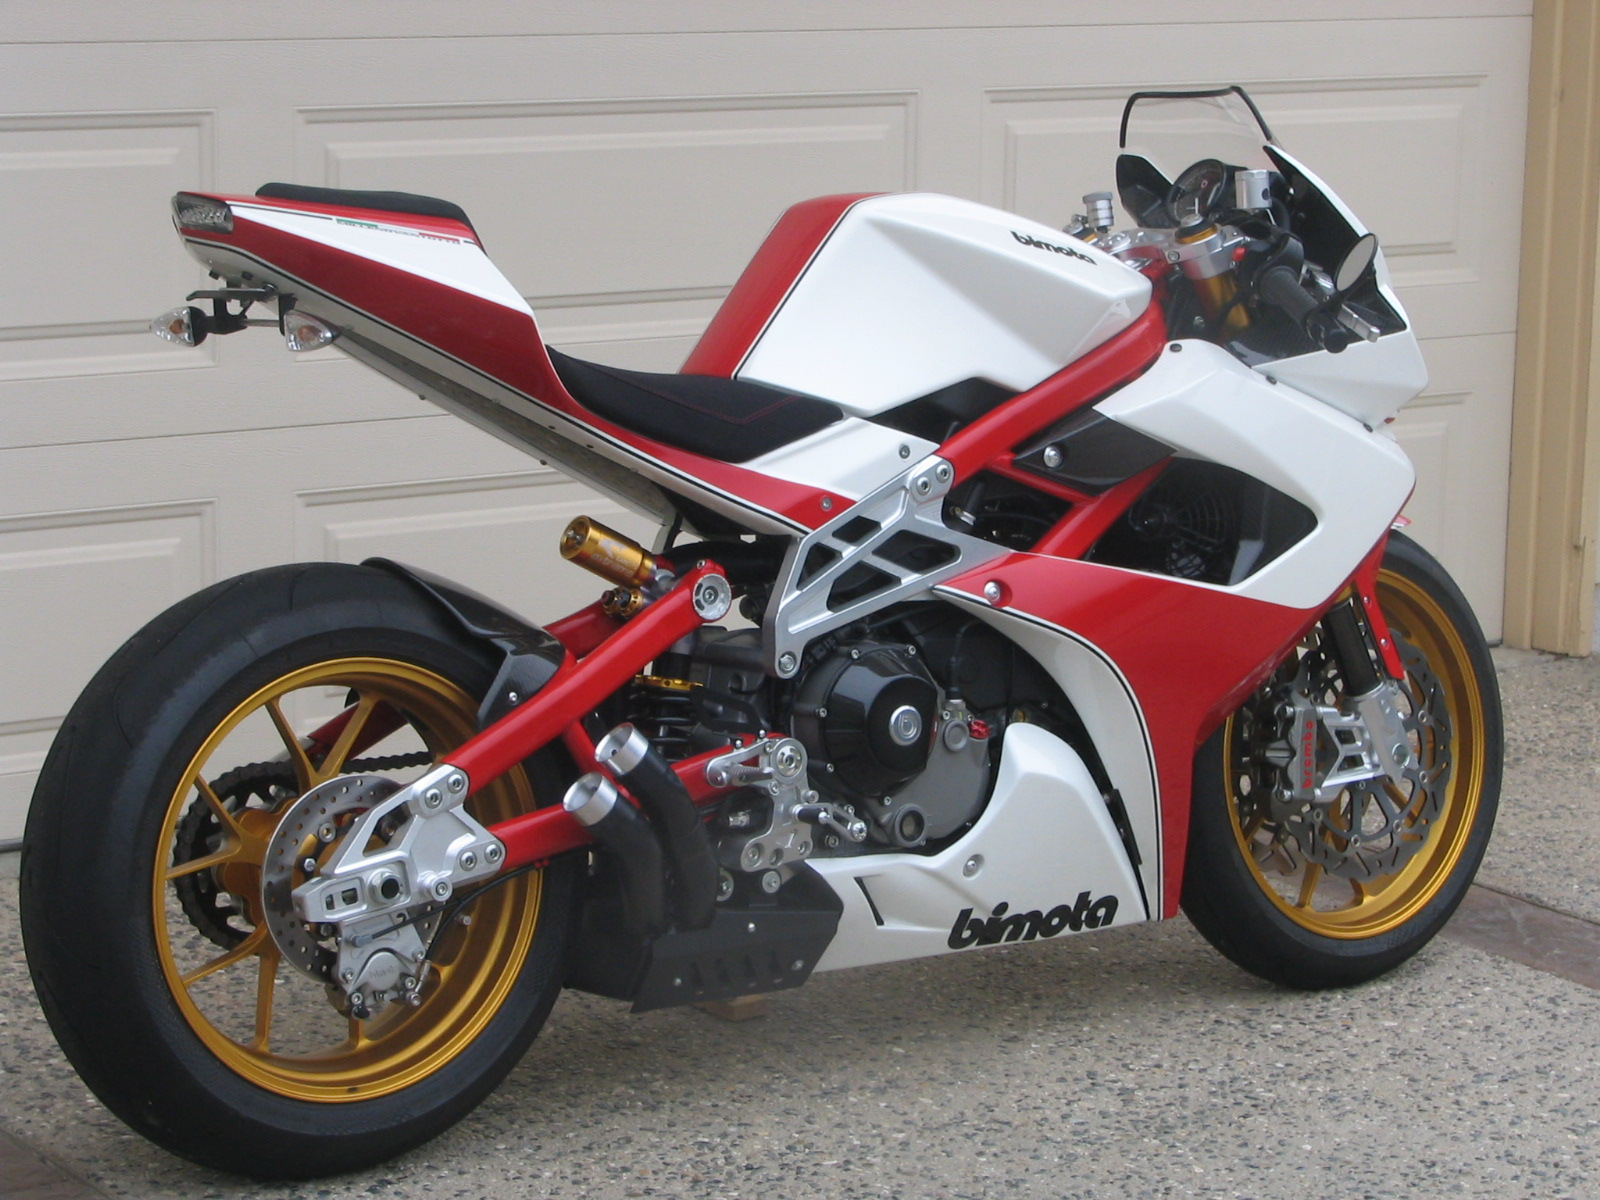 Bimota Pictures And Wallpapers Openiso Org Collection Of Cars